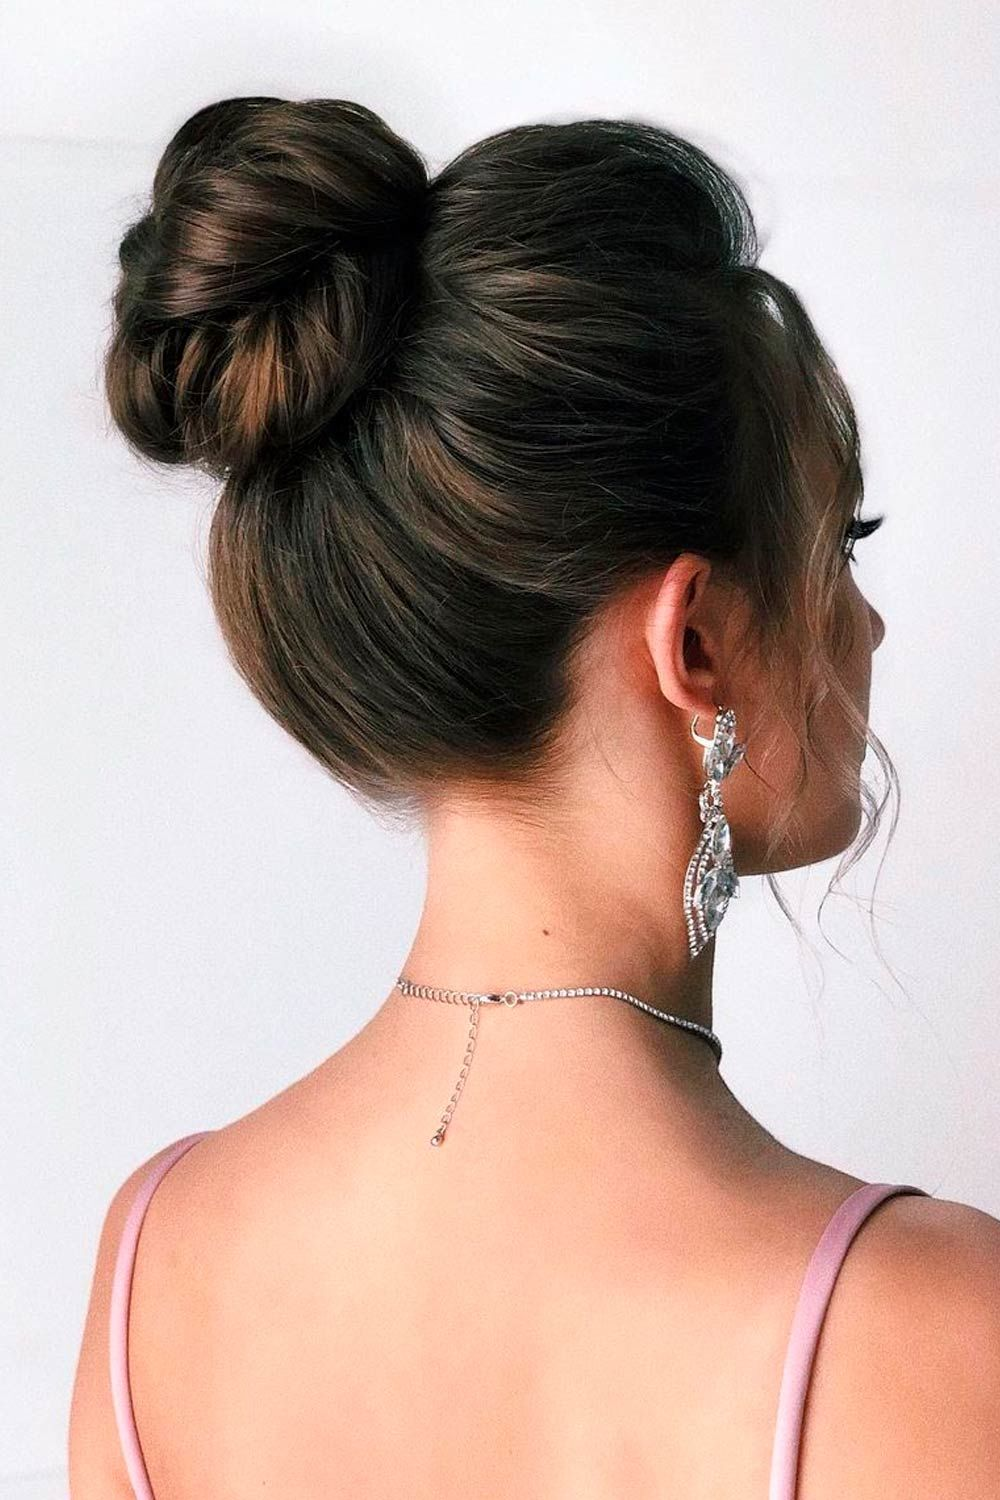 Elegant High Upstyle For Parties